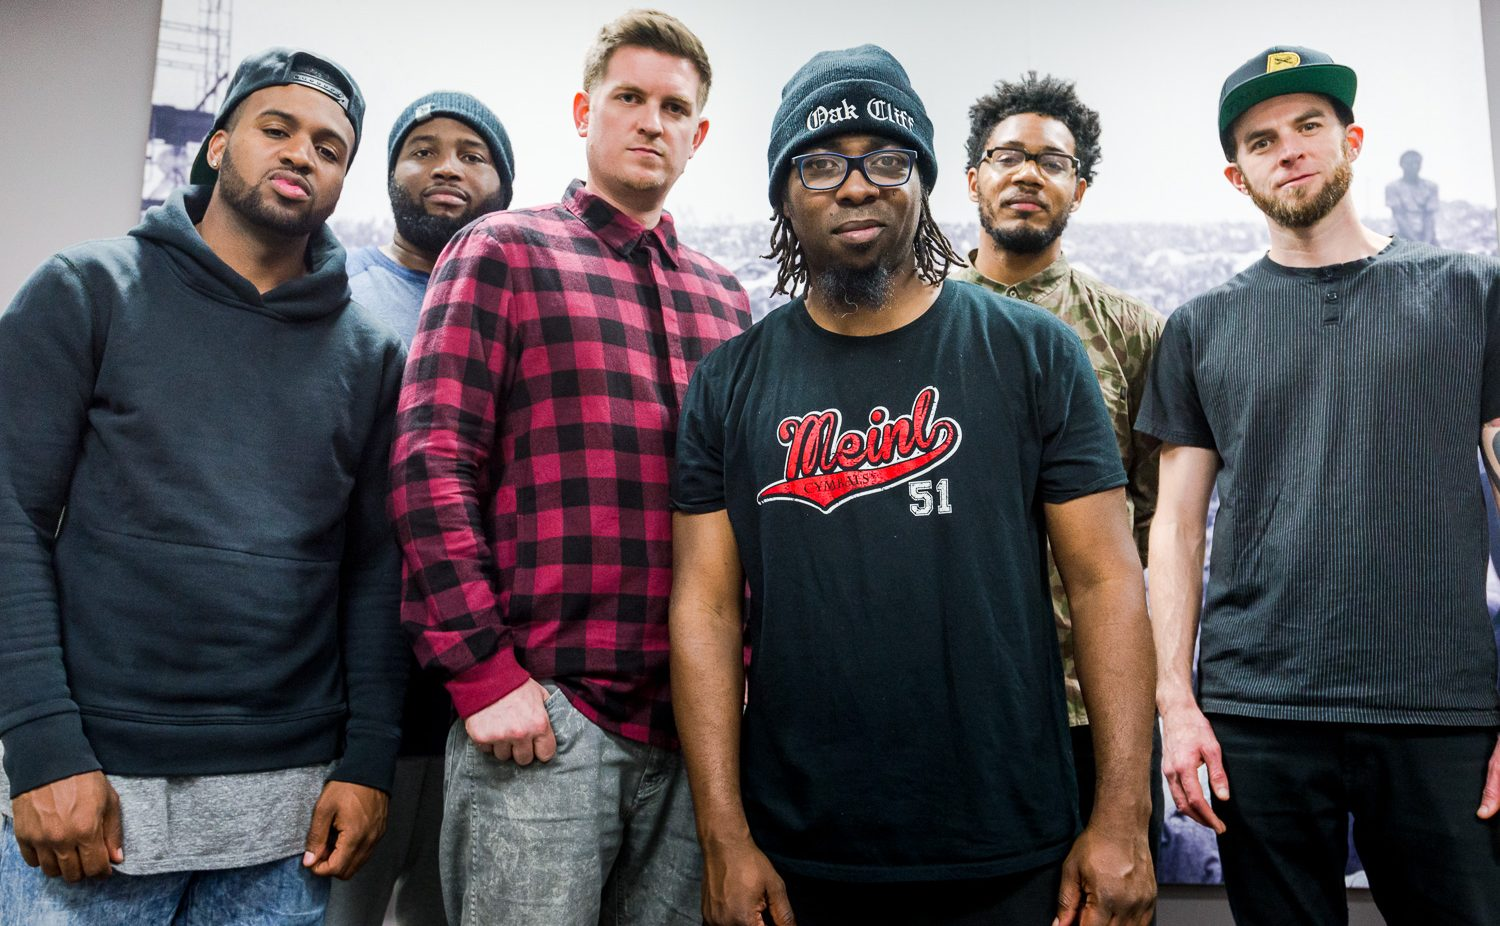 Ghost Note, featuring members of Snarky Puppy and Prince's band, plays the Buffalo Iron Works on September 25.